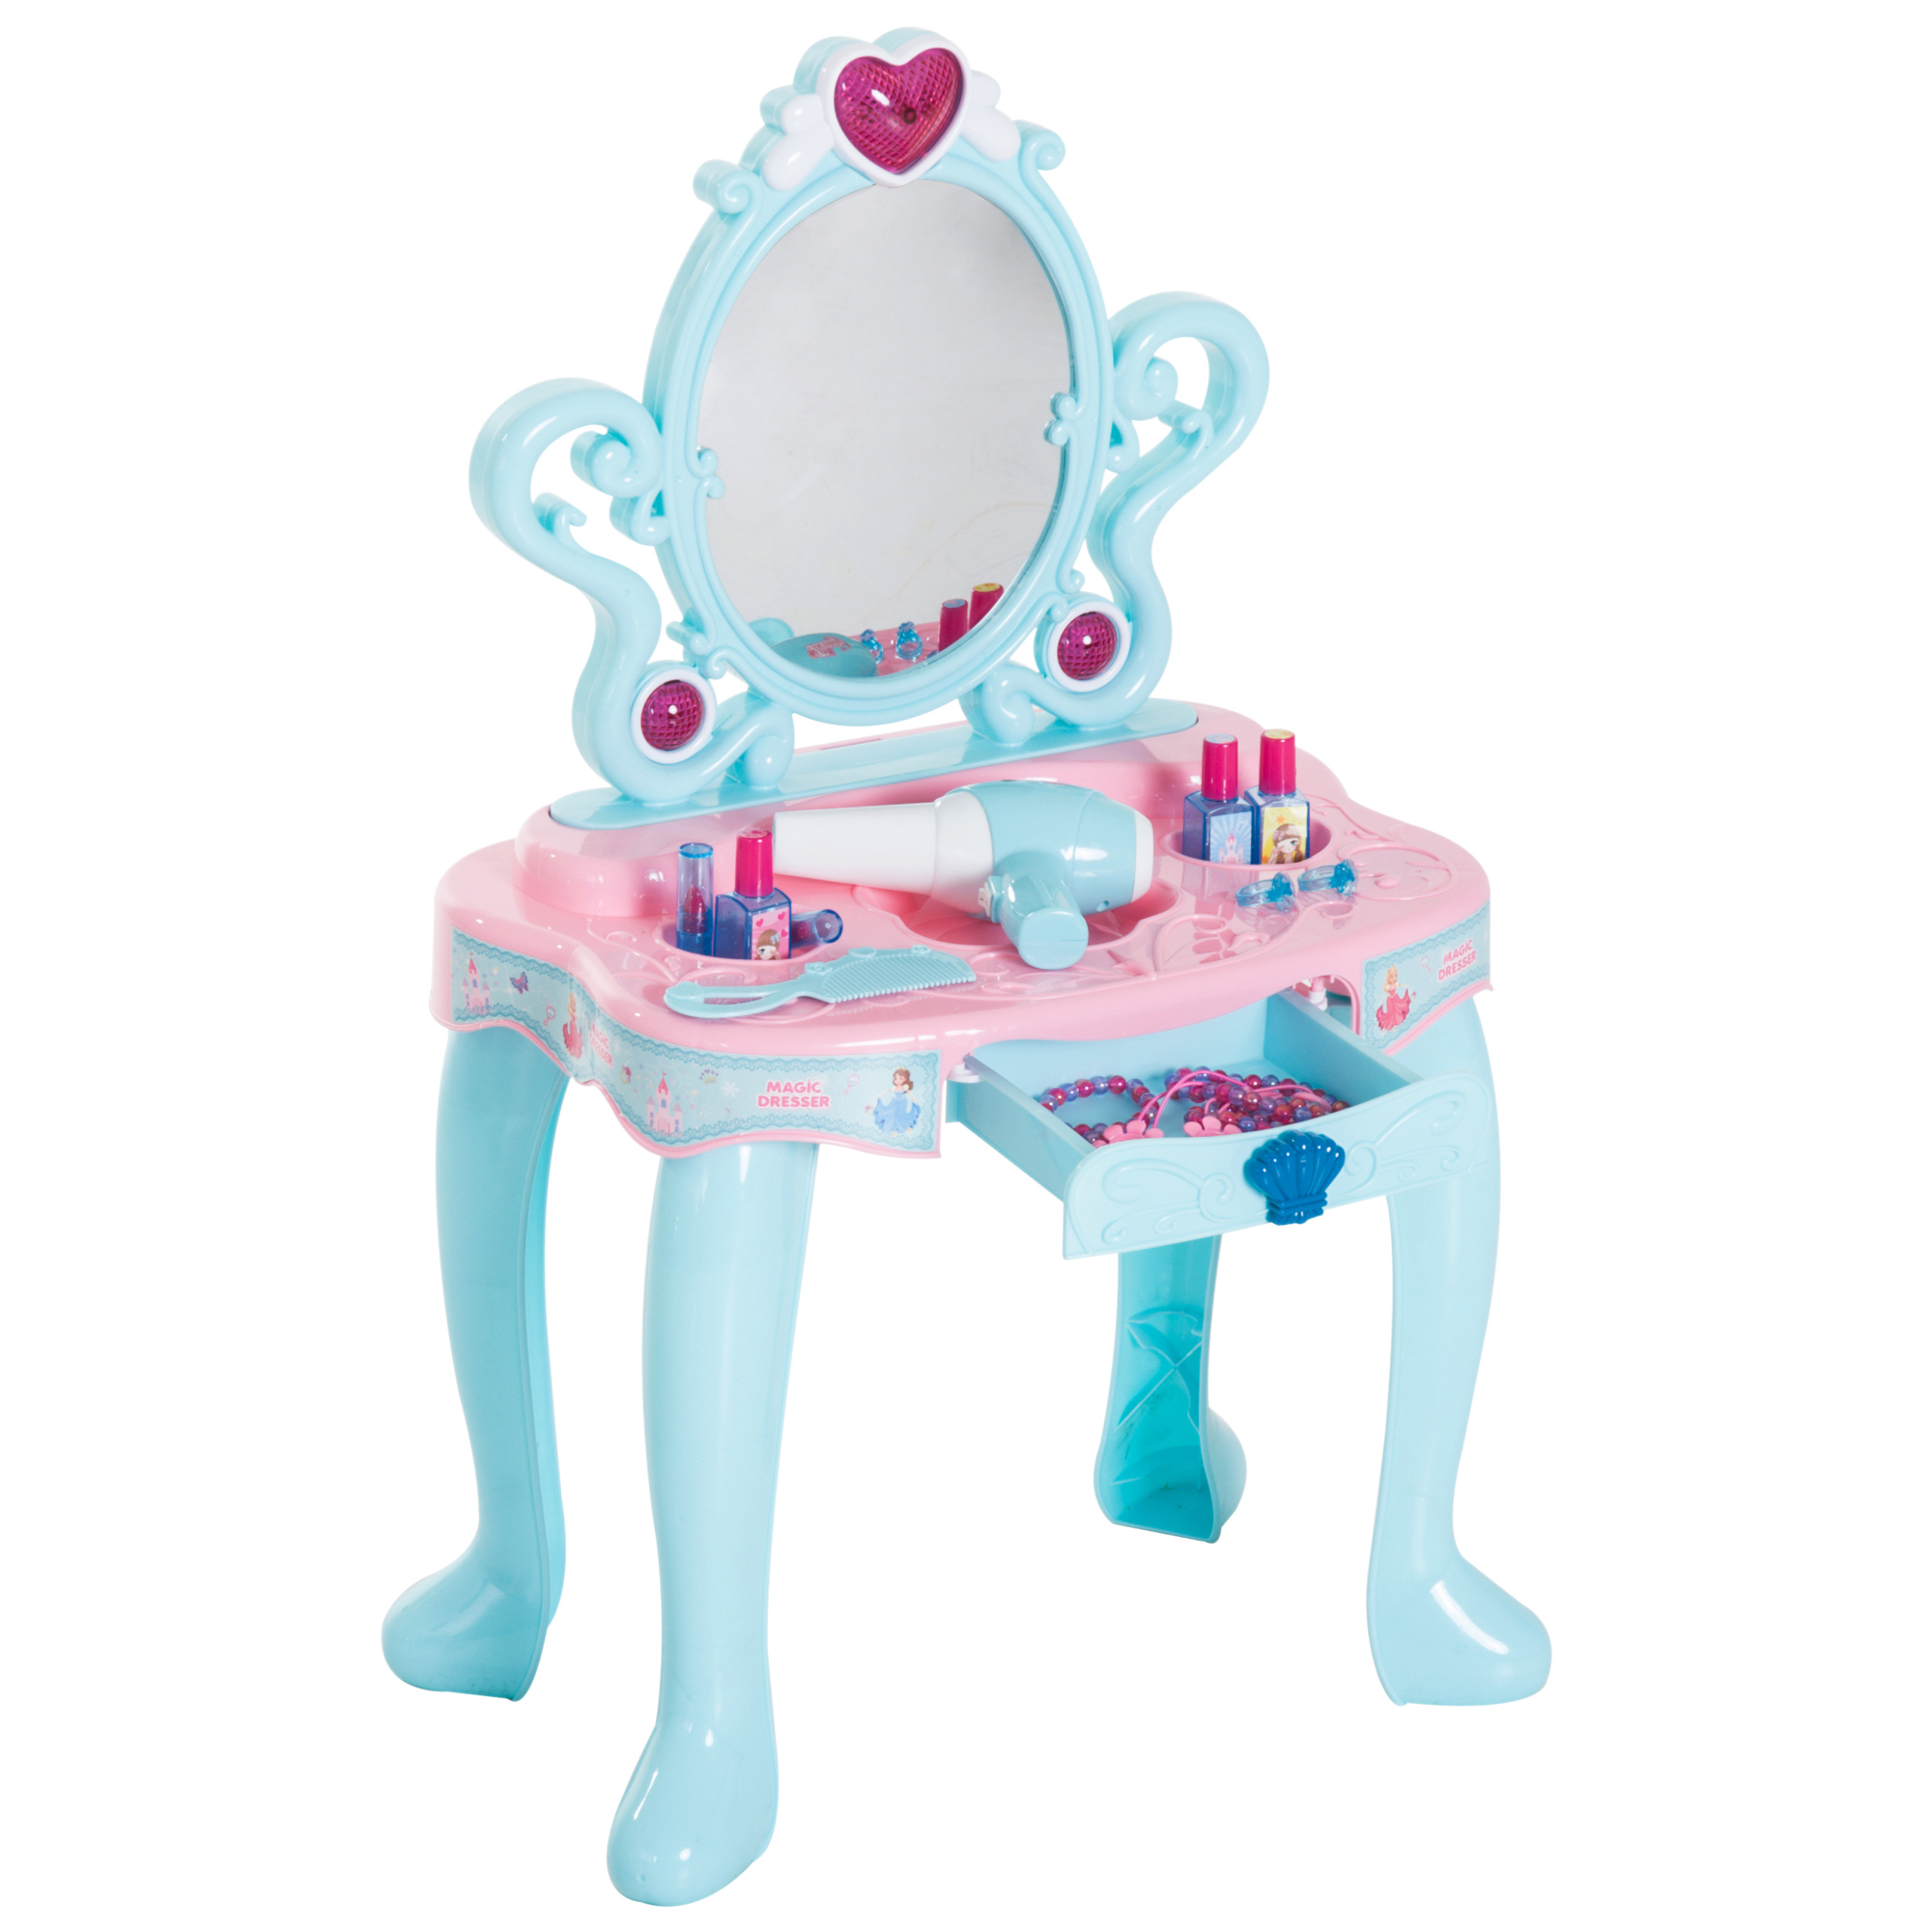 HOMCOM Table Makeup Girl Dressing Table Toy Accessories, Music, Lights PP Plastic Green Pink